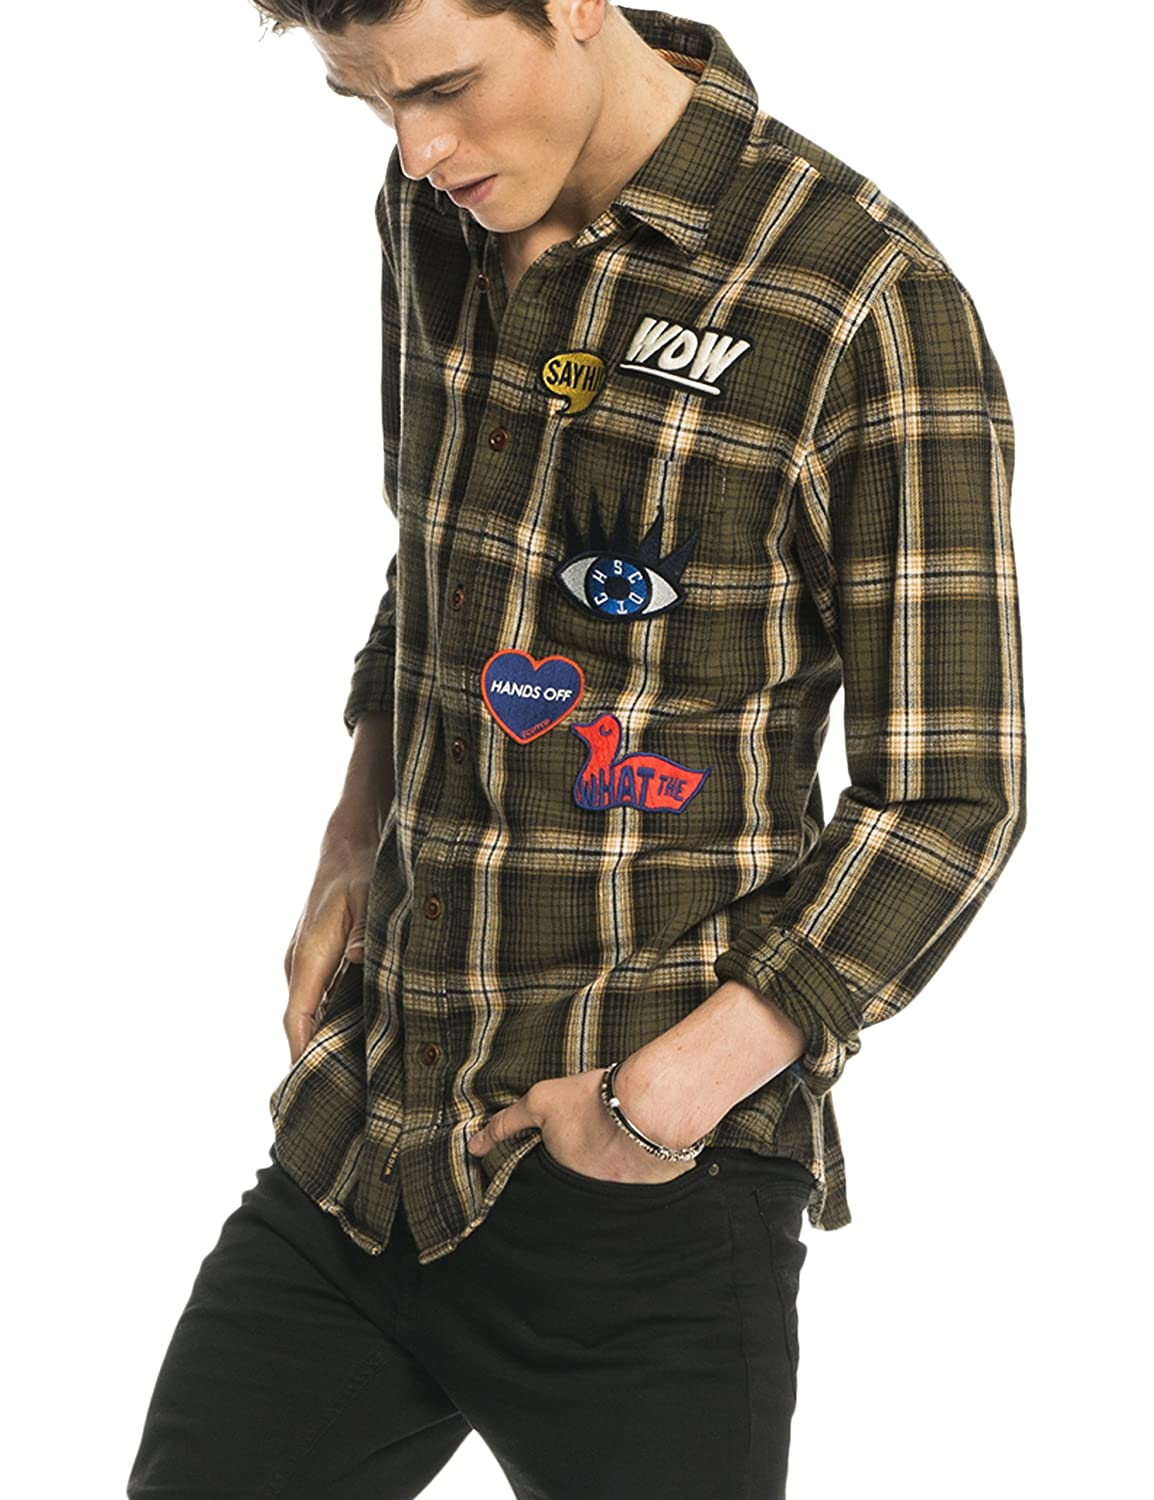 Scotch & Soda Herren Freizeit Hemd Longsleeve Shirt in Cotton Twill Flannel Quality in Multicolour Check Pattern